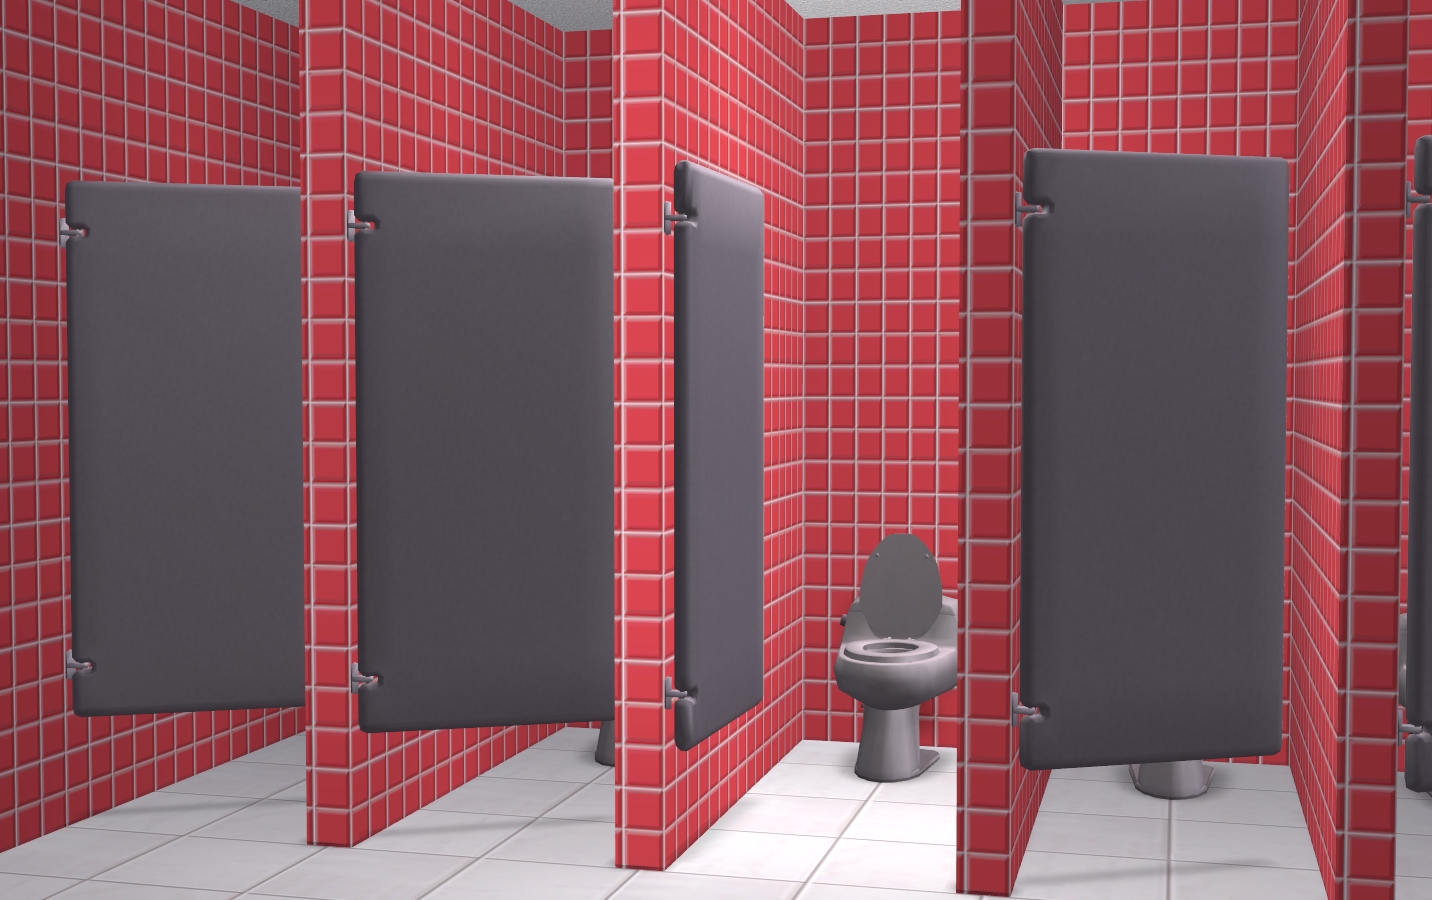 Bathroom Stalls Sims 3 mod the sims - astro stall door